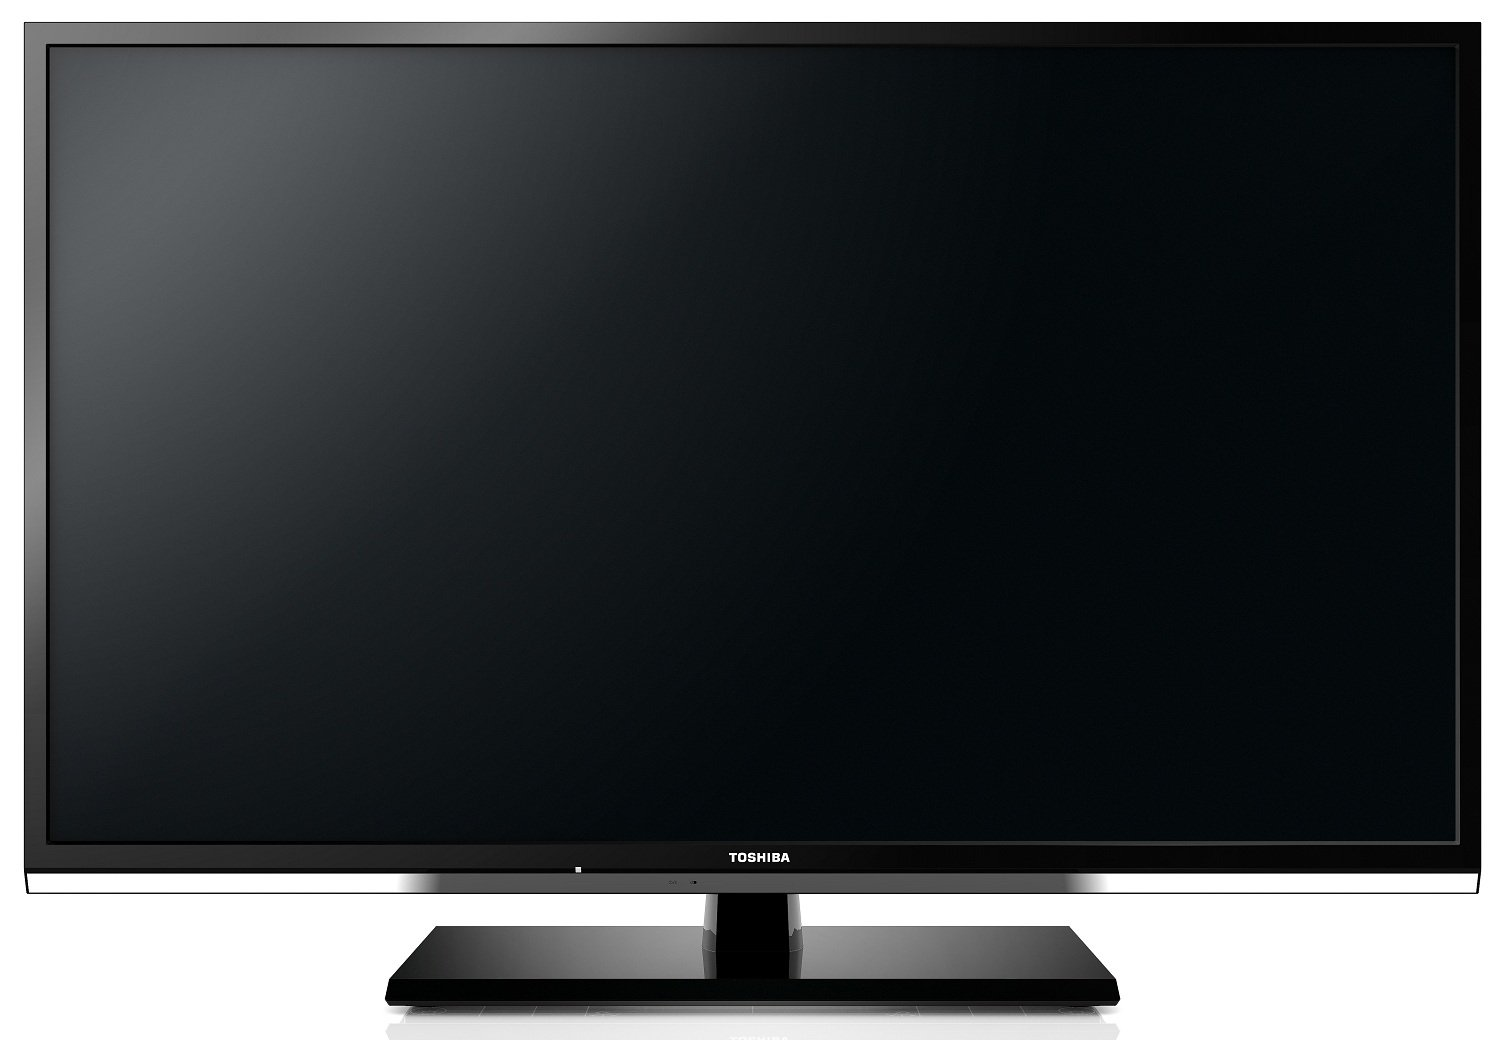 toshiba 40rl933g 101 6 cm 40 zoll fernseher full hd twin tuner smart tv. Black Bedroom Furniture Sets. Home Design Ideas